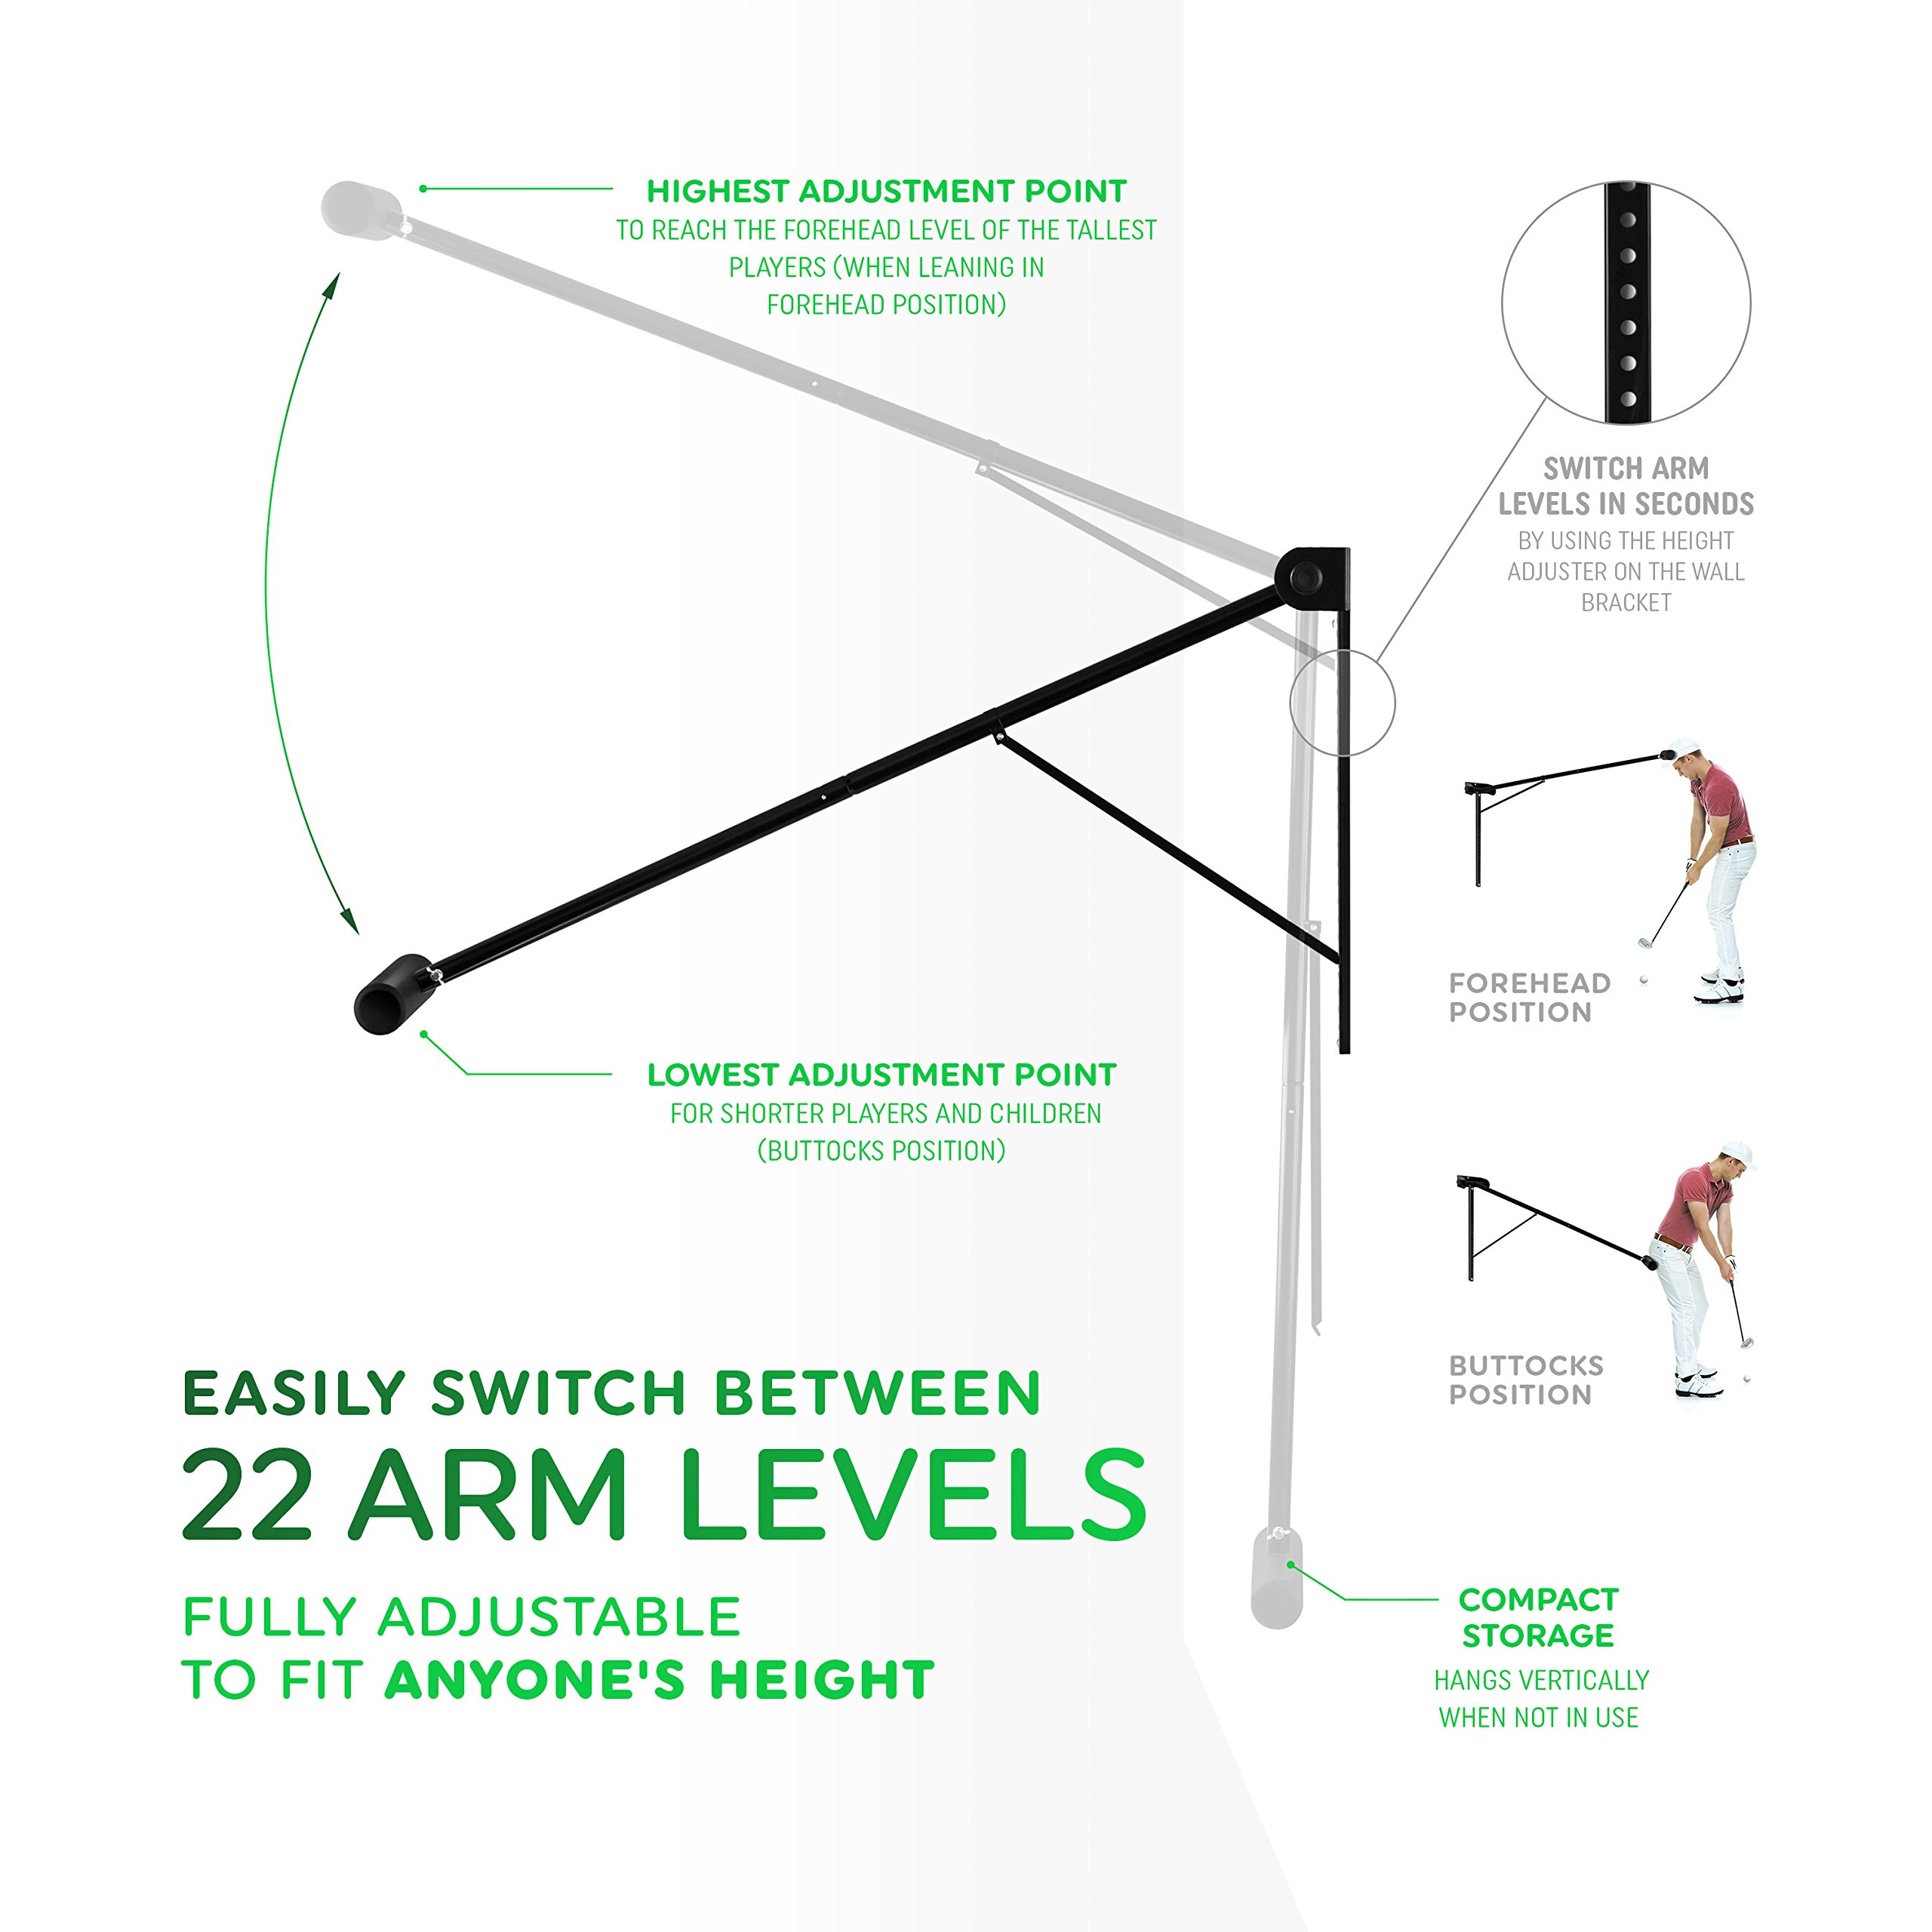 Golf Swing Trainer PRO-HEAD - Wall or Tree Golf Training Aid Equipment for All Golfers - Posture Correcting Tool - Fix and Keep a Steady Head, Maintain Spine Angle - Practice Indoor & Outdoor by PRO-HEAD (Image #3)